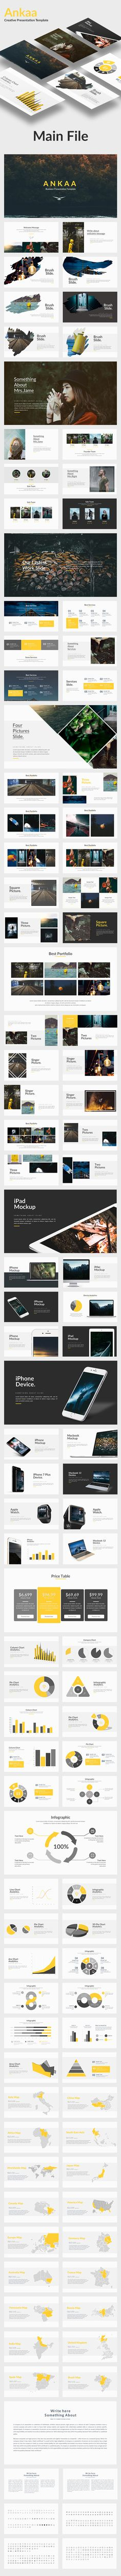 Ankaa - Creative Keynote Template - Creative #Keynote Templates Download here: https://graphicriver.net/item/ankaa-creative-keynote-template/19678829?ref=alena994